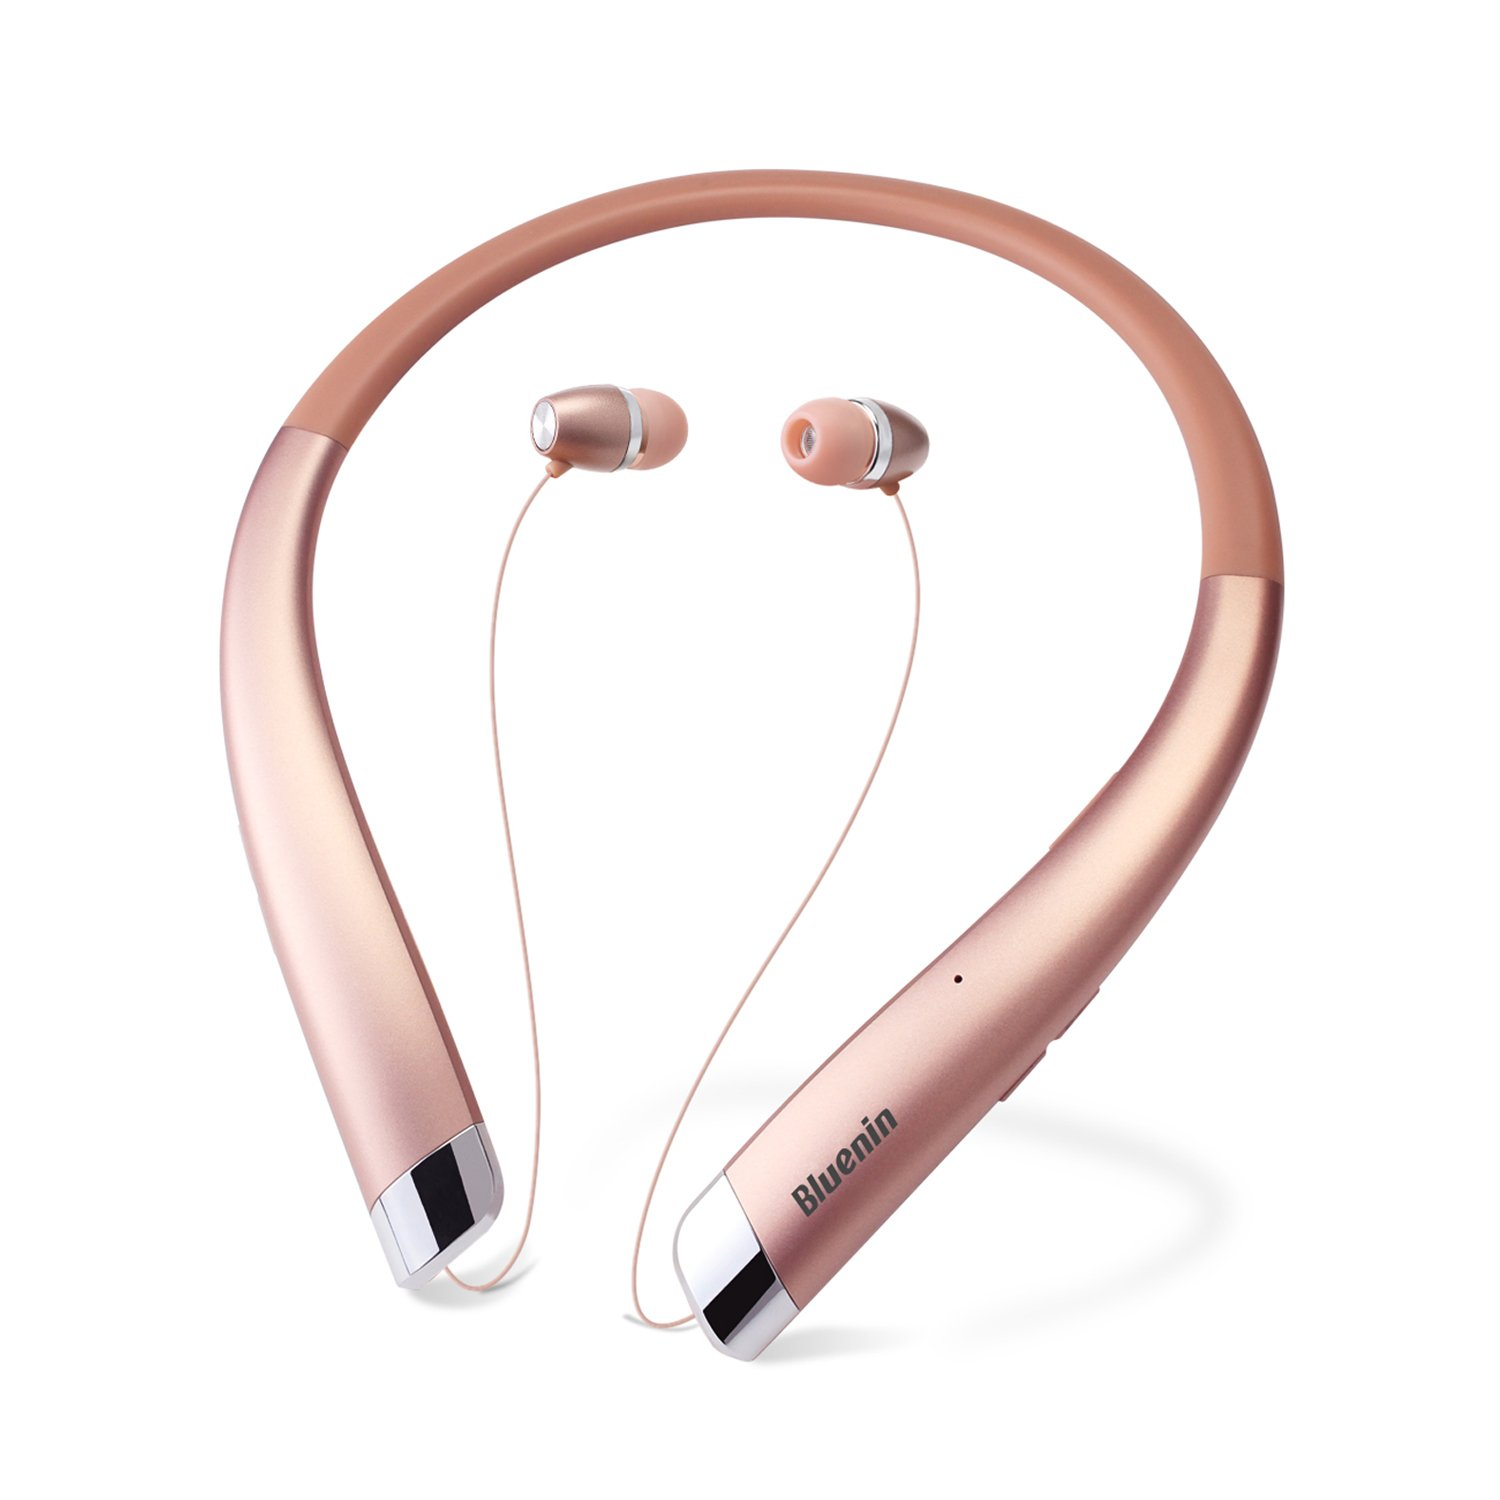 Wireless Earbuds Retractable Stereo Neckband Headphones with Mic/ by Mikicat Bluetooth Headset 12 Hours Play Time, Noise Canceling, Rose Gold